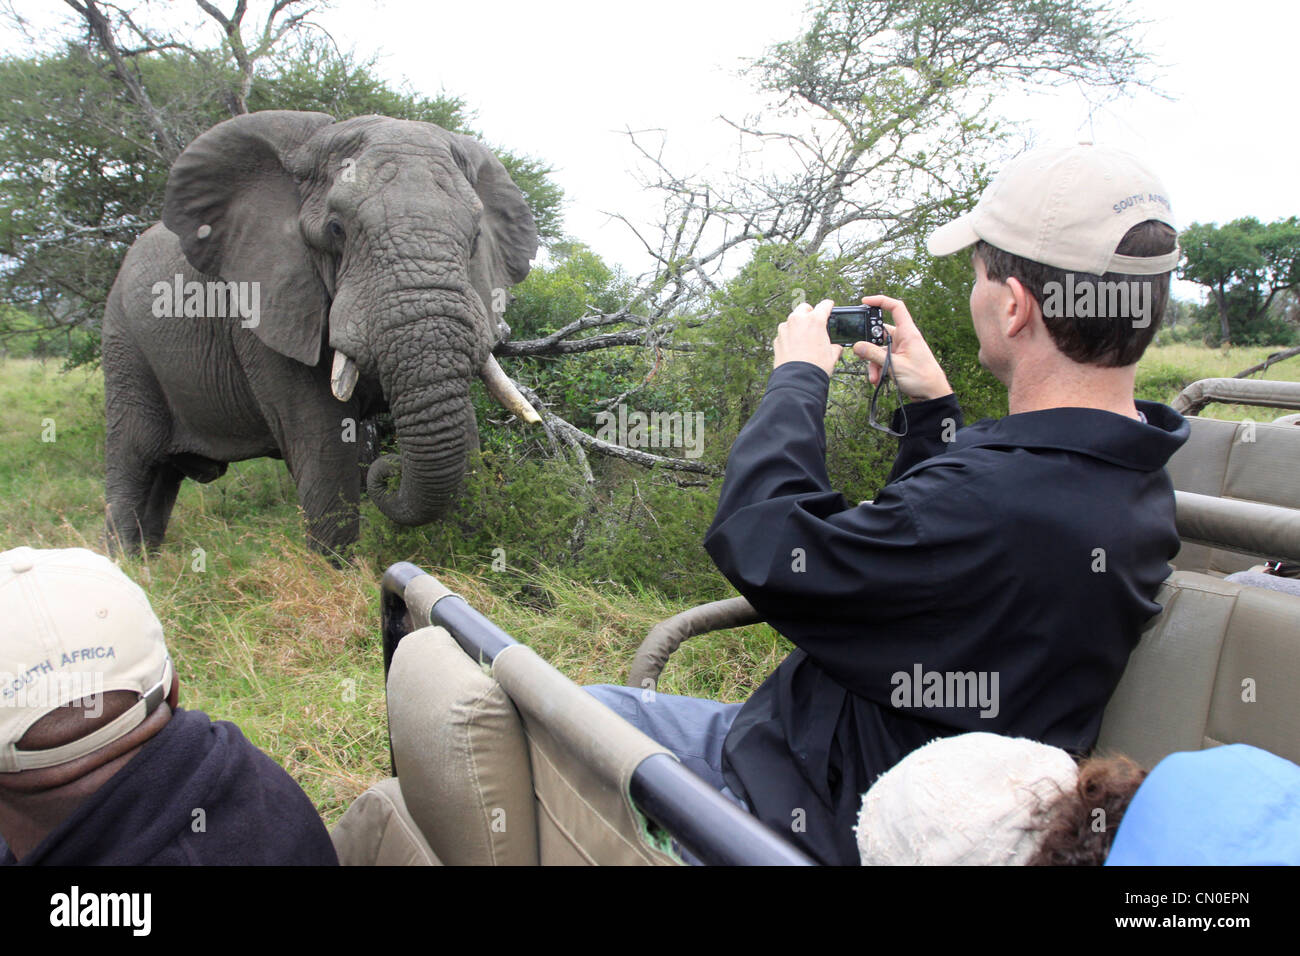 An elephant looks at the camera whilst a tourist takes a photograph of him. Lions Sands, Kruger NP, South Africa. - Stock Image